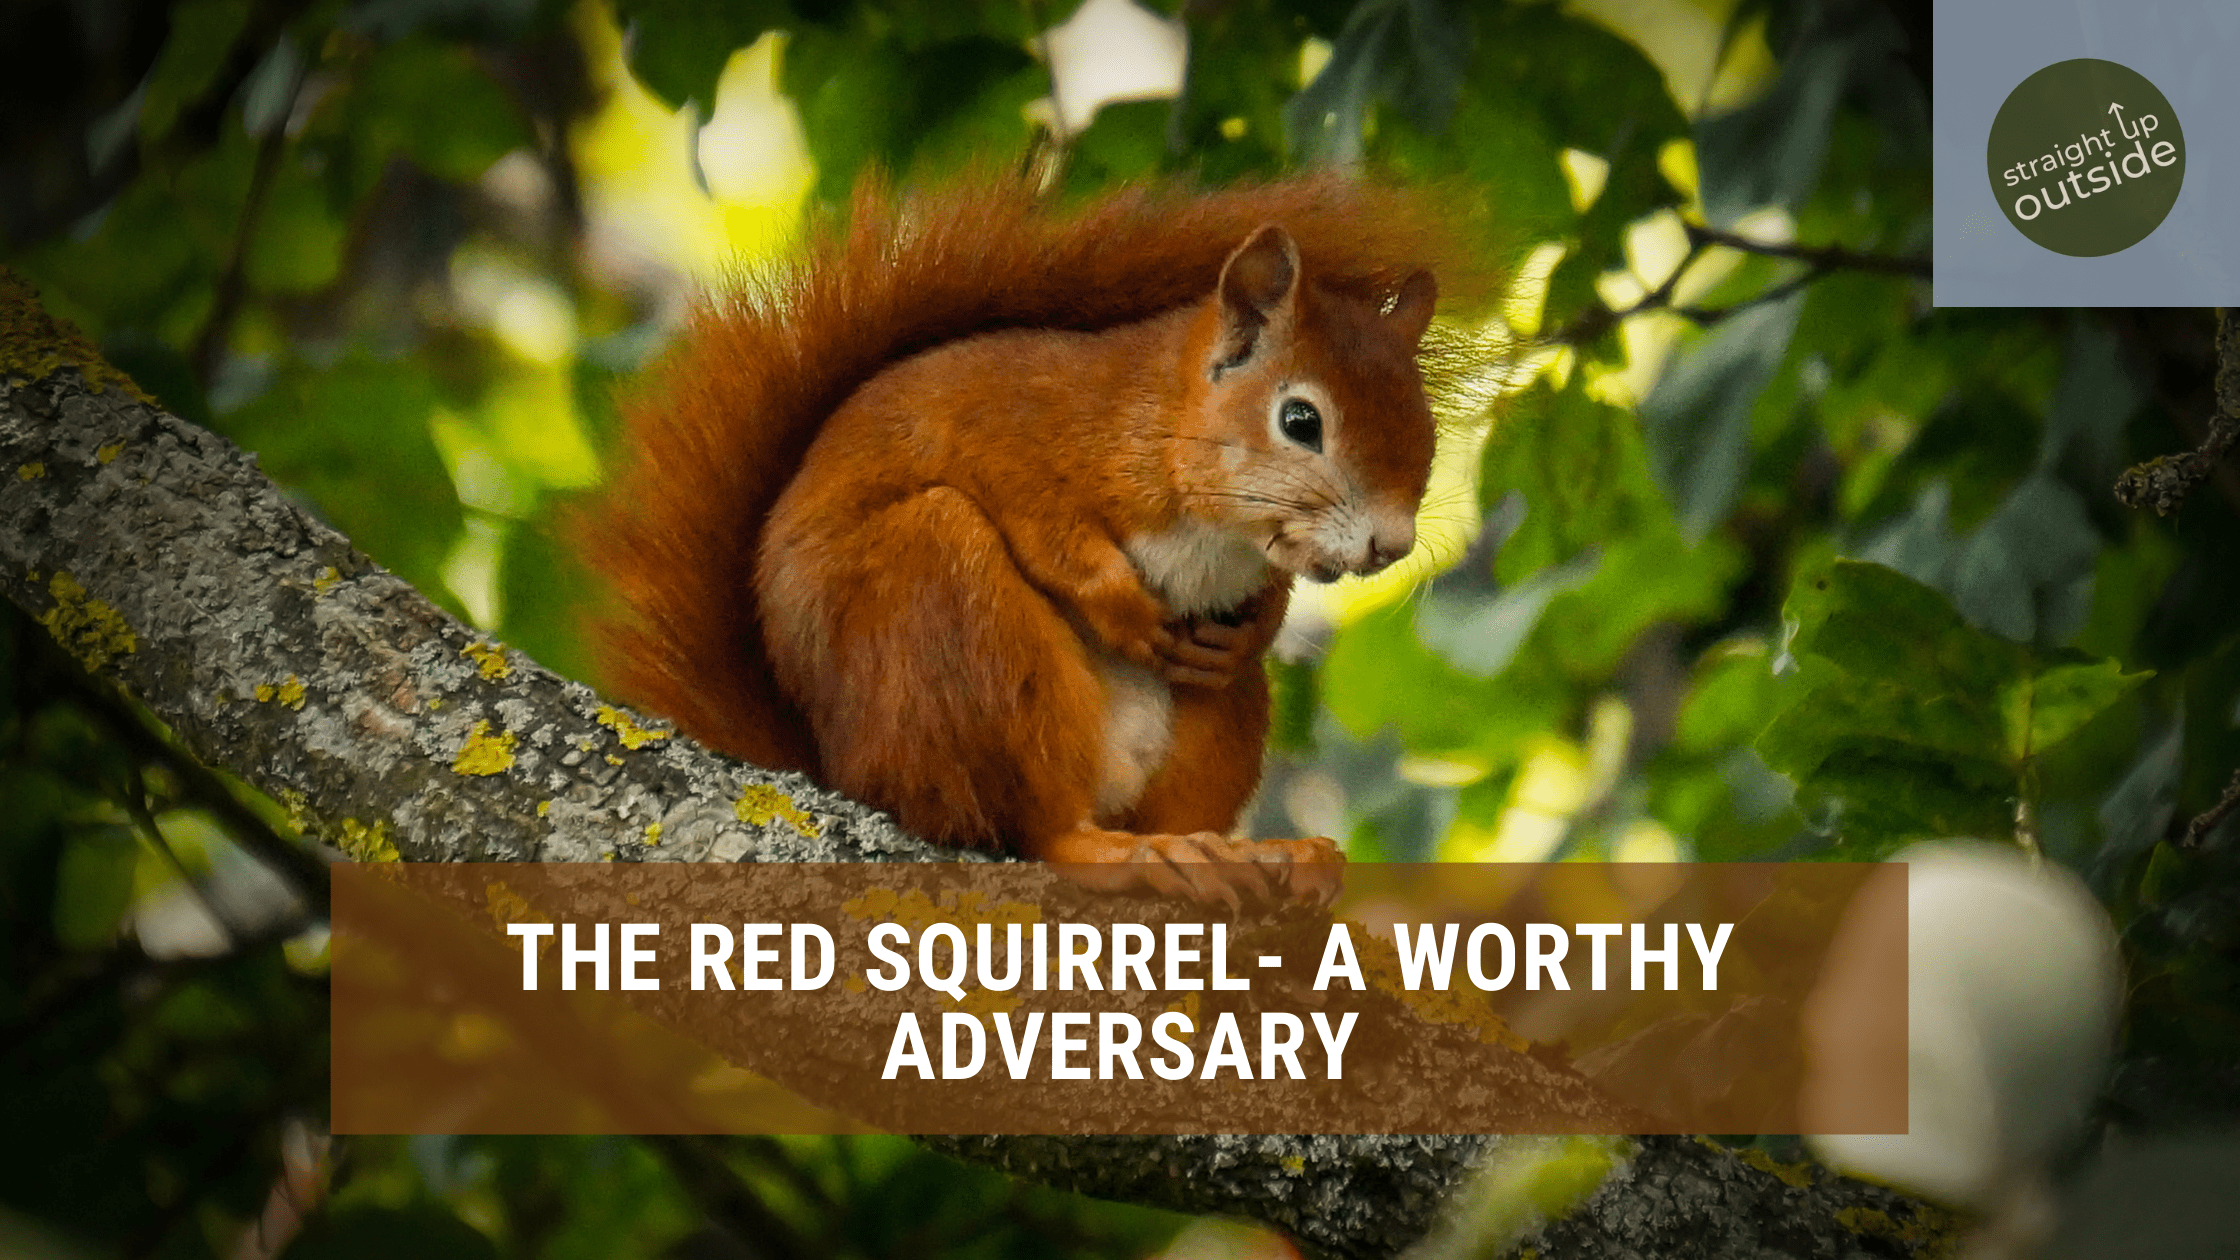 The Red Squirrel, A Worthy Adversary